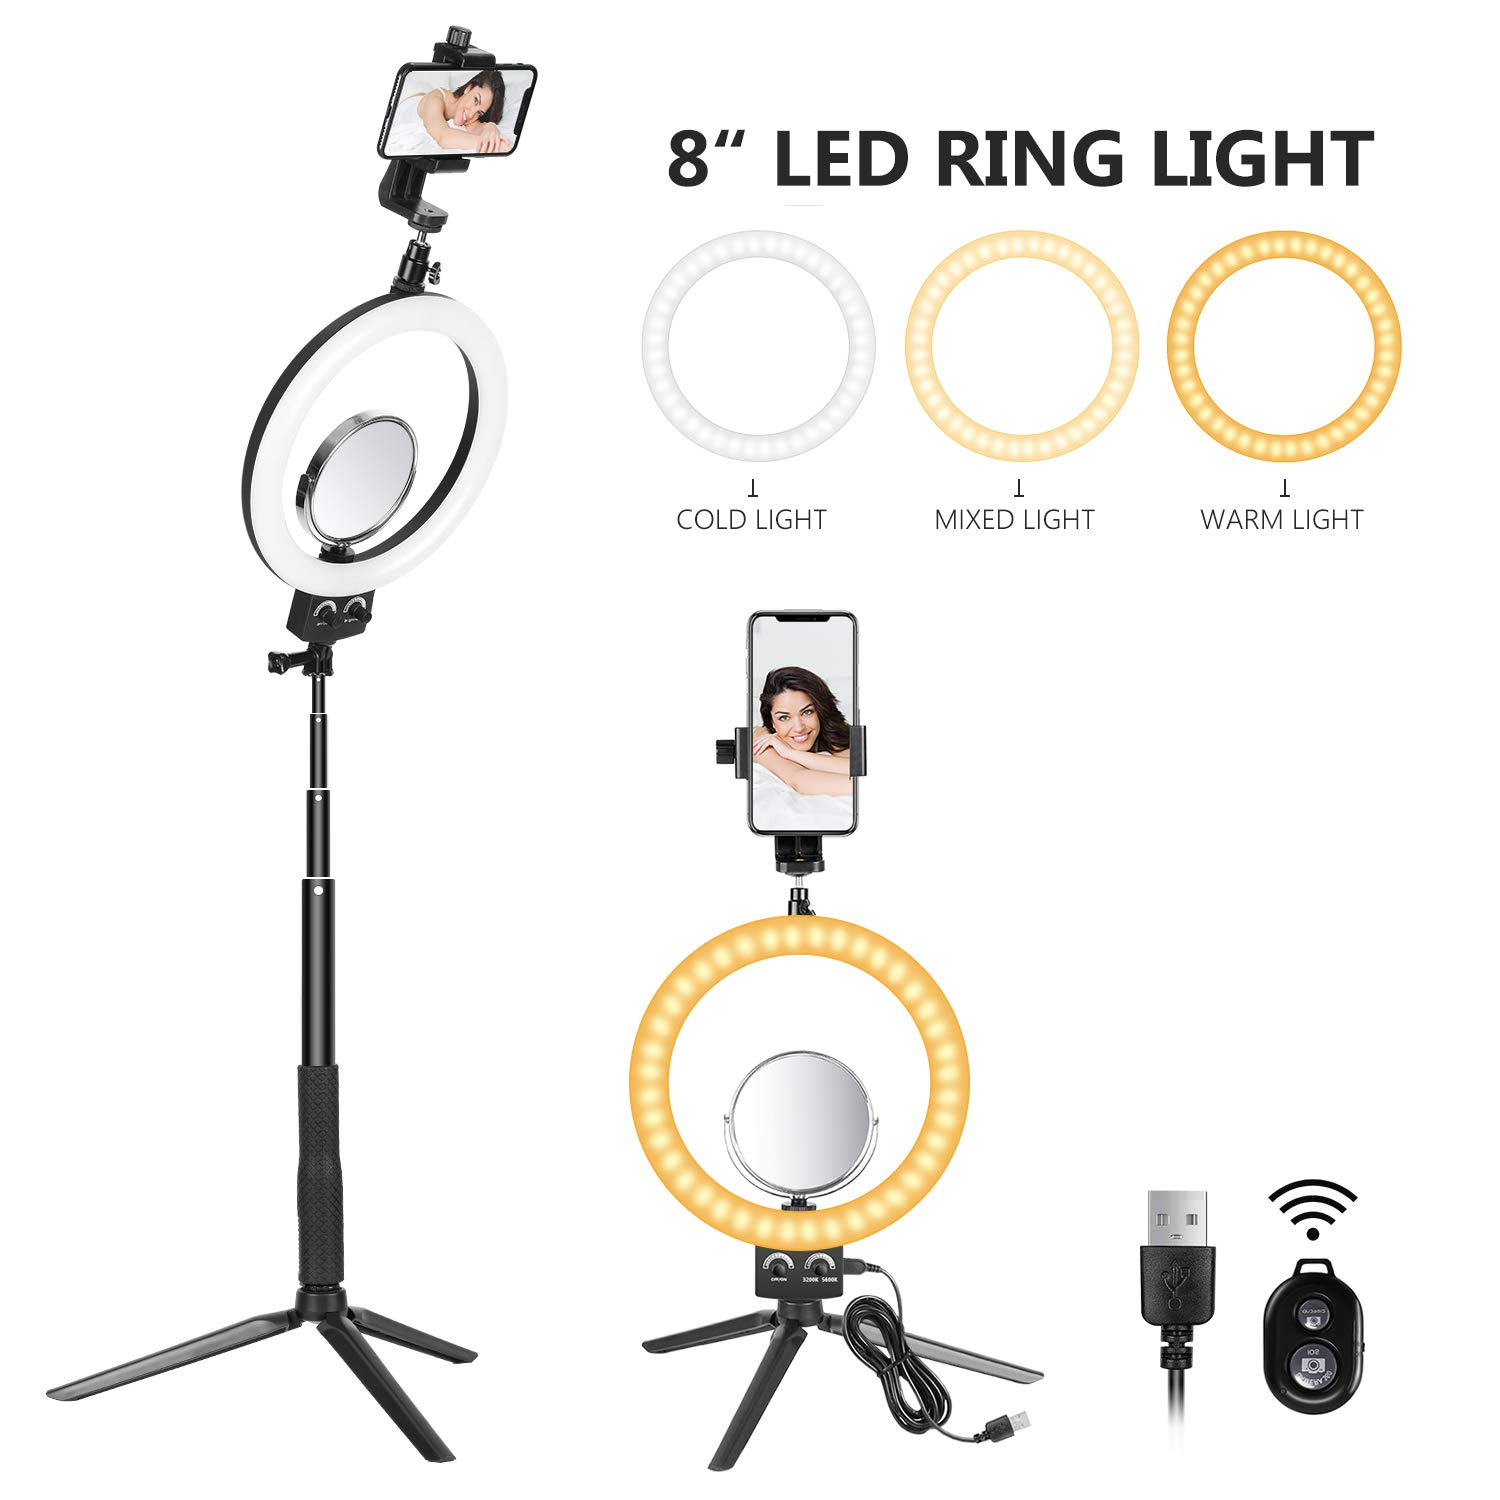 Neewer 8-inch LED Ring Light with Adjustable Tripod Stand Selfie Stick for YouTube Video Live Streaming Makeup Selfie, 3200-5600K Tabletop Lamp with Makeup Mirror/Mini Tripod/Phone Clamp,3 Light Modes by Neewer